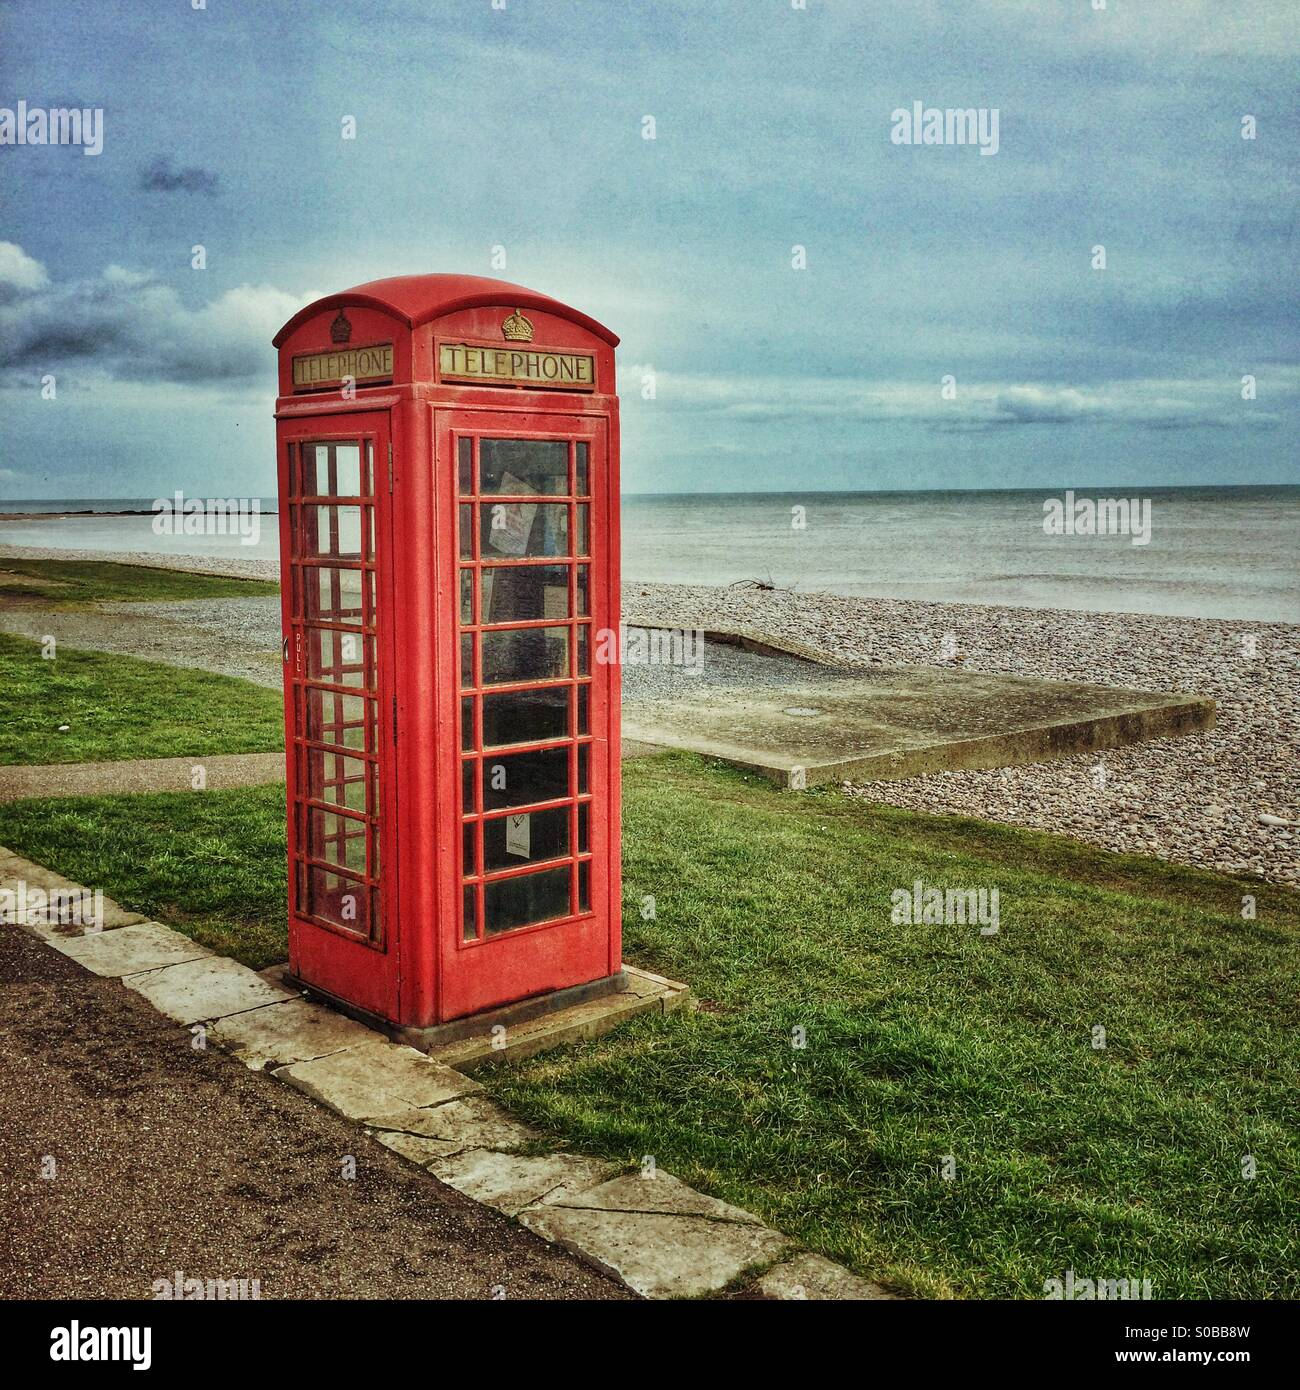 A red telephone box on the Coast - Stock Image